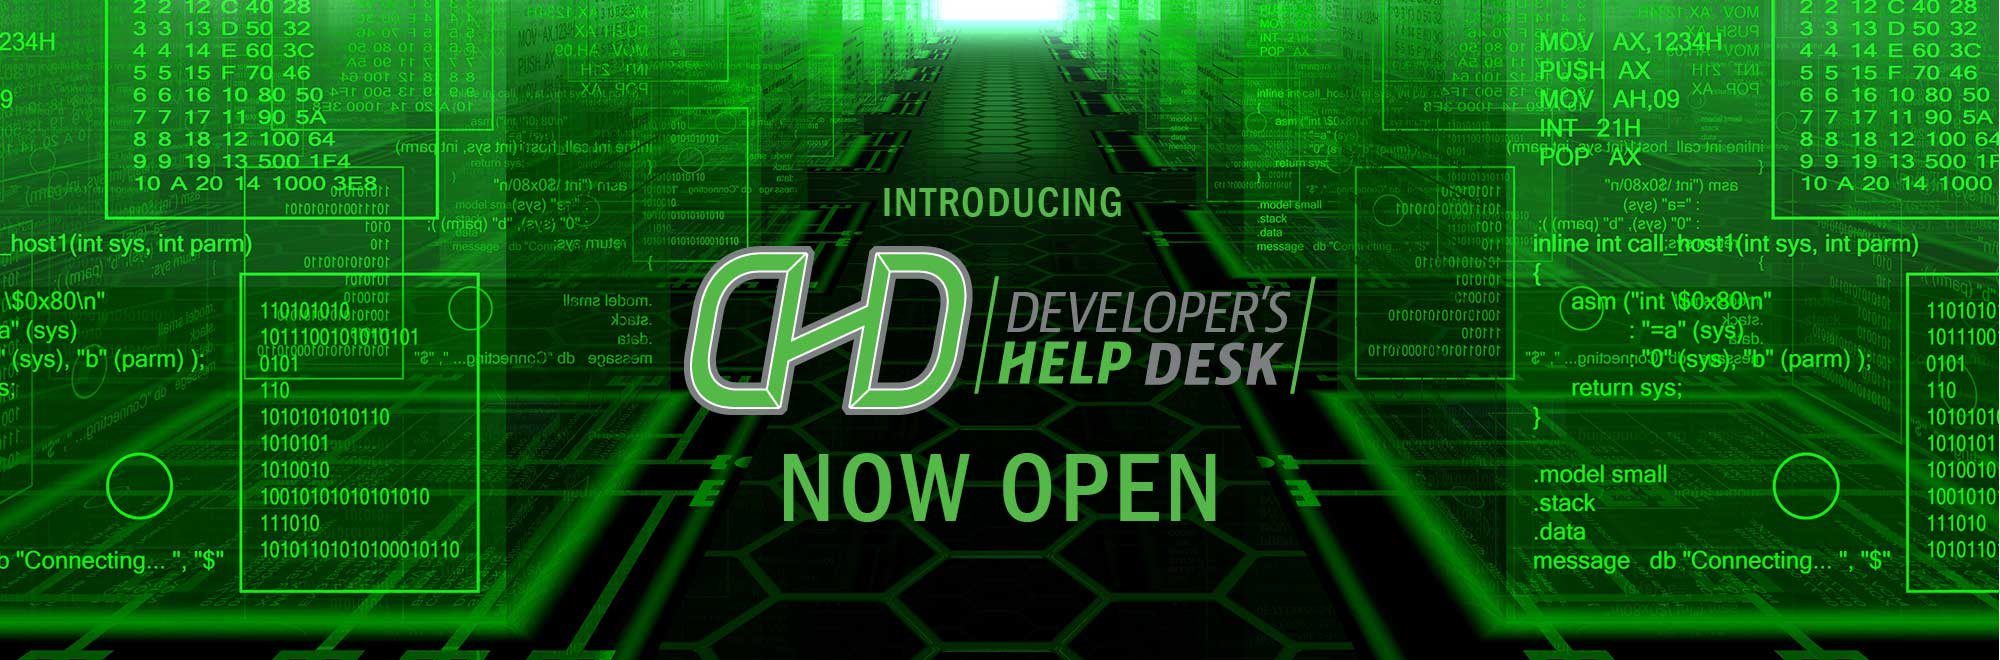 The DHD is now open